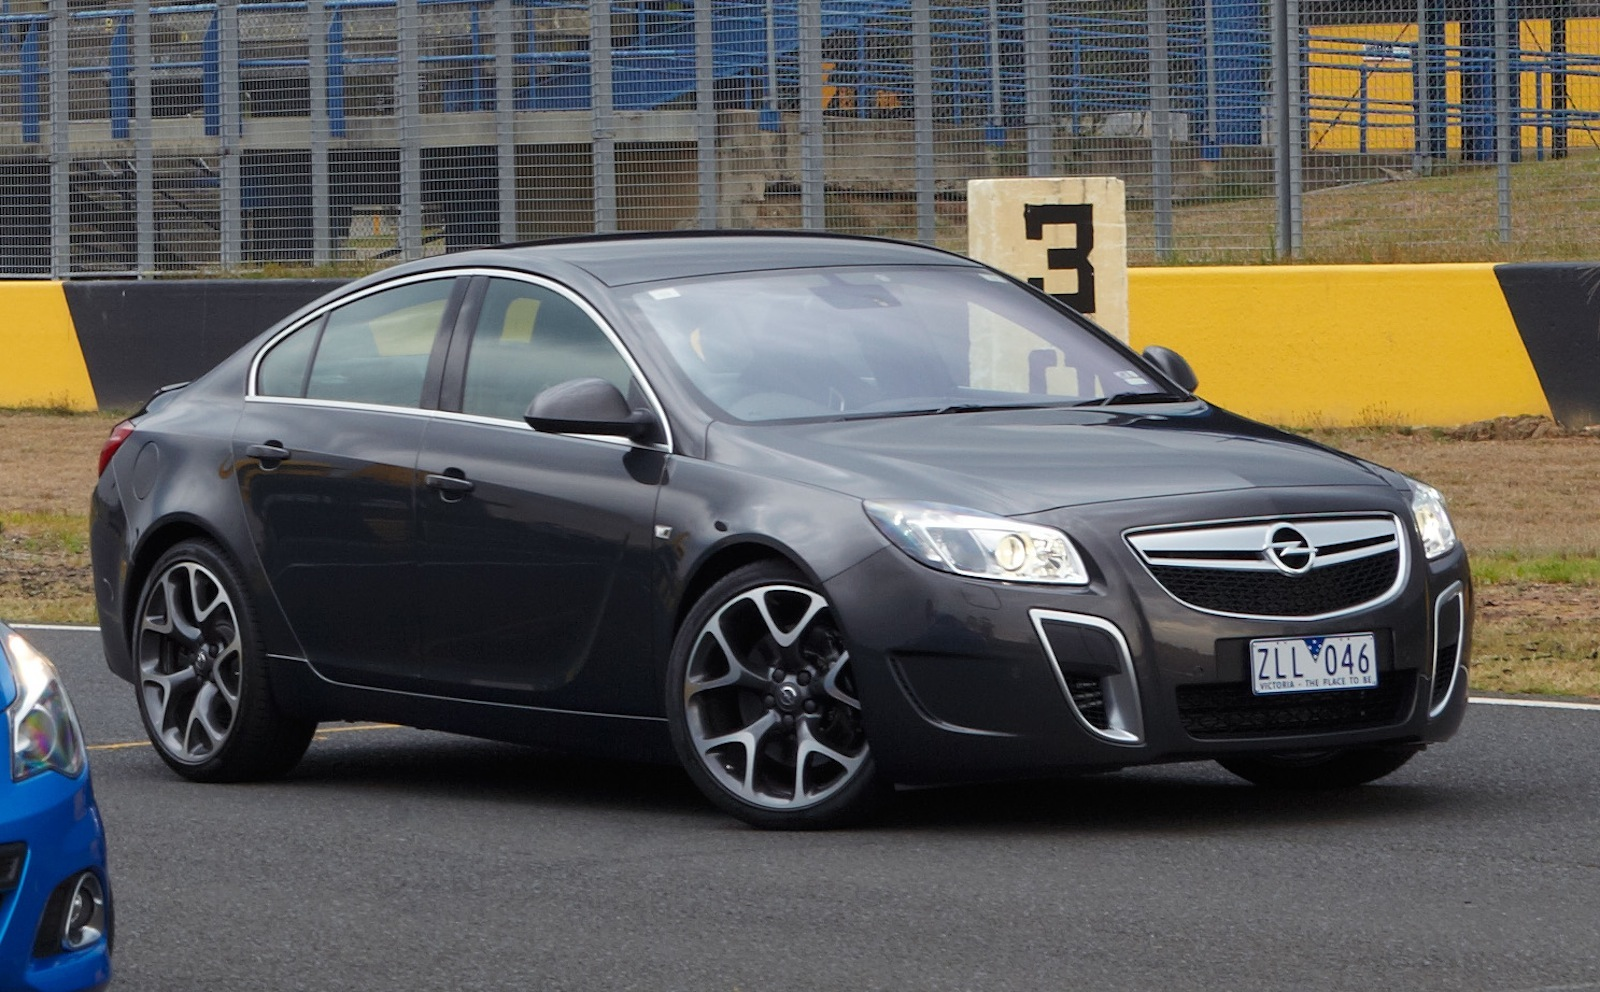 opel insignia opc pricing and specifications photos 1 of 12. Black Bedroom Furniture Sets. Home Design Ideas